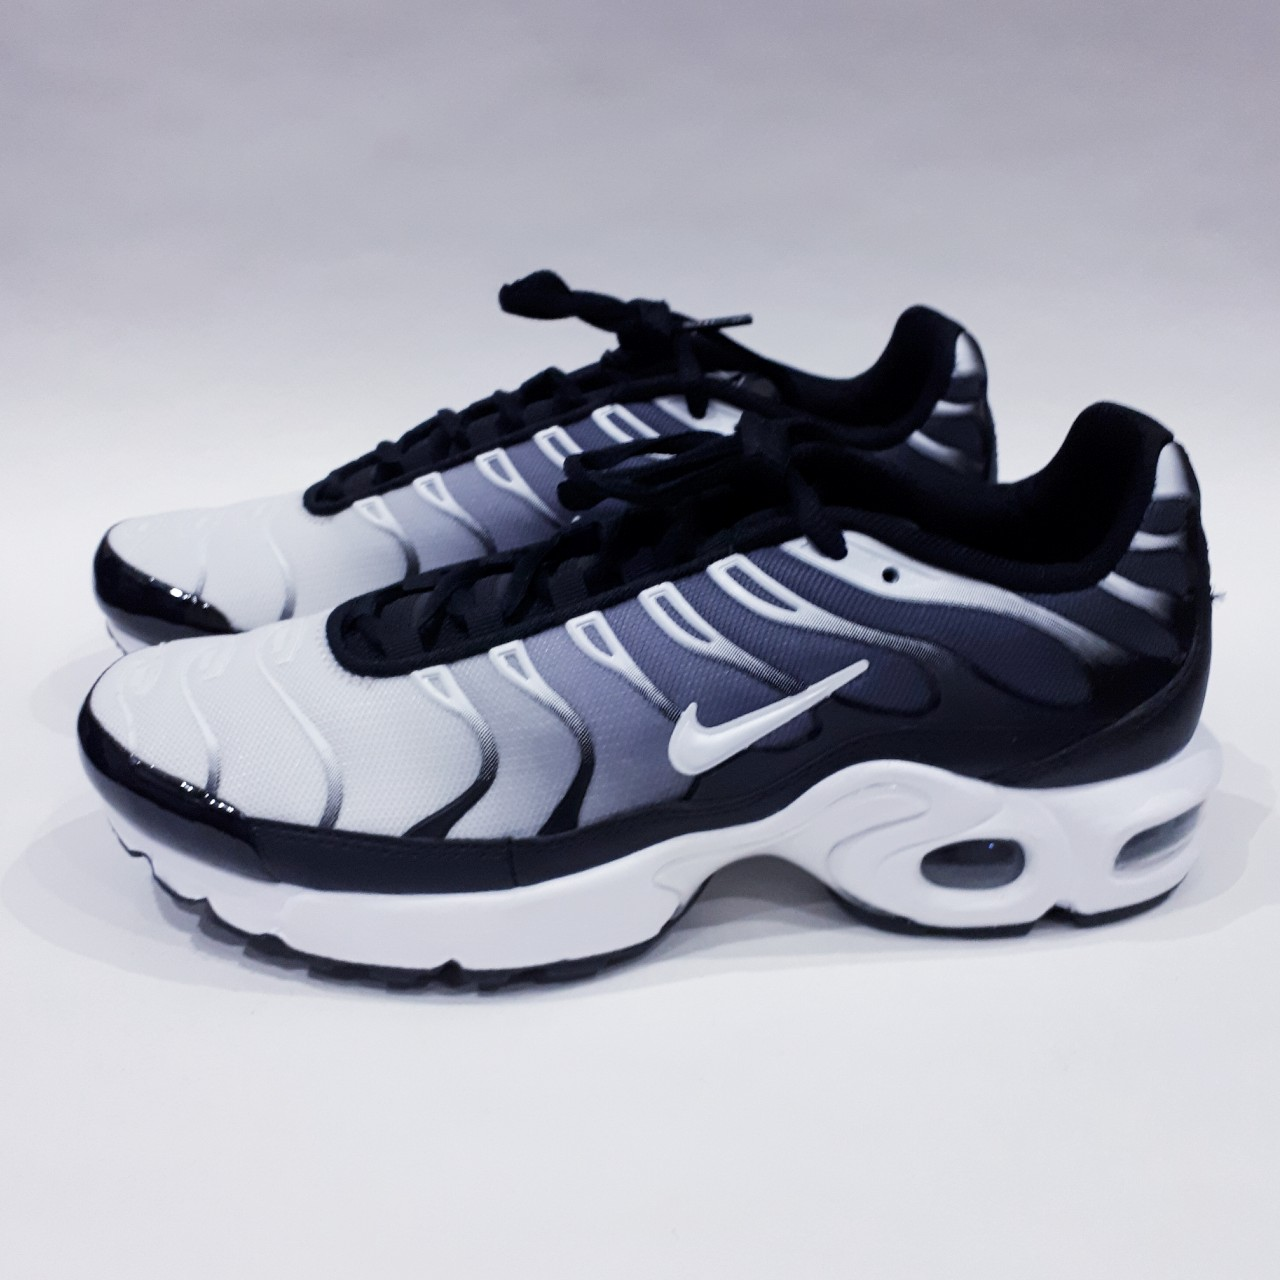 BlackWhite Silver Nike Air Max Plus Older Kids Size Depop